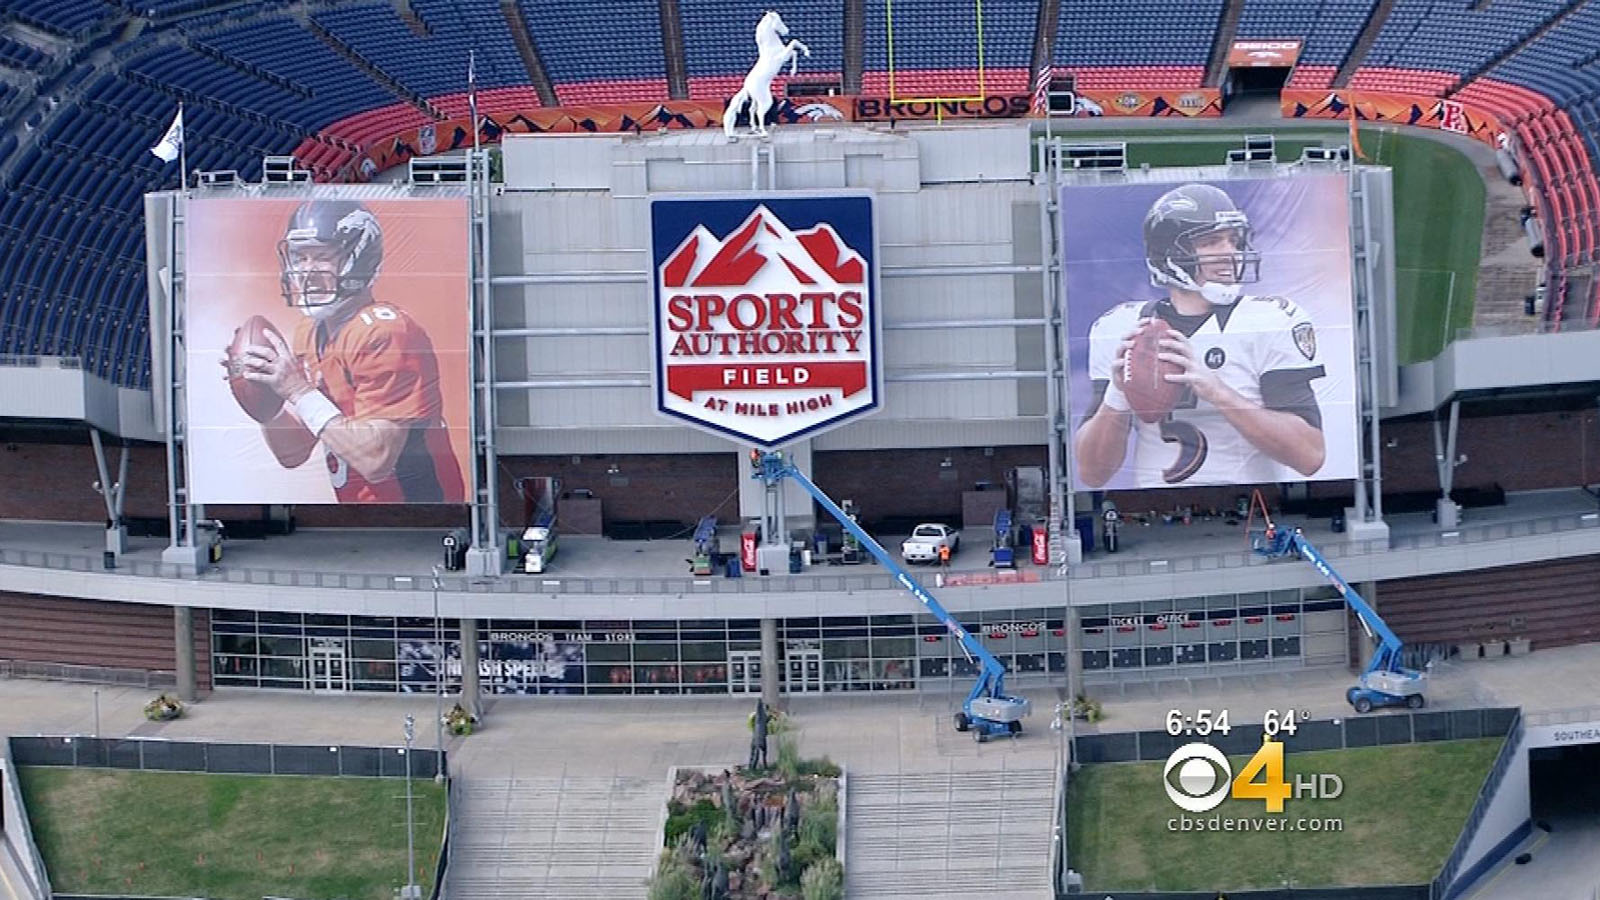 Peyton Manning and Joe Flacco's images are shown on screens outside Sports Authority Field at Mile High on Aug. 27, 2013. (credit: CBS)